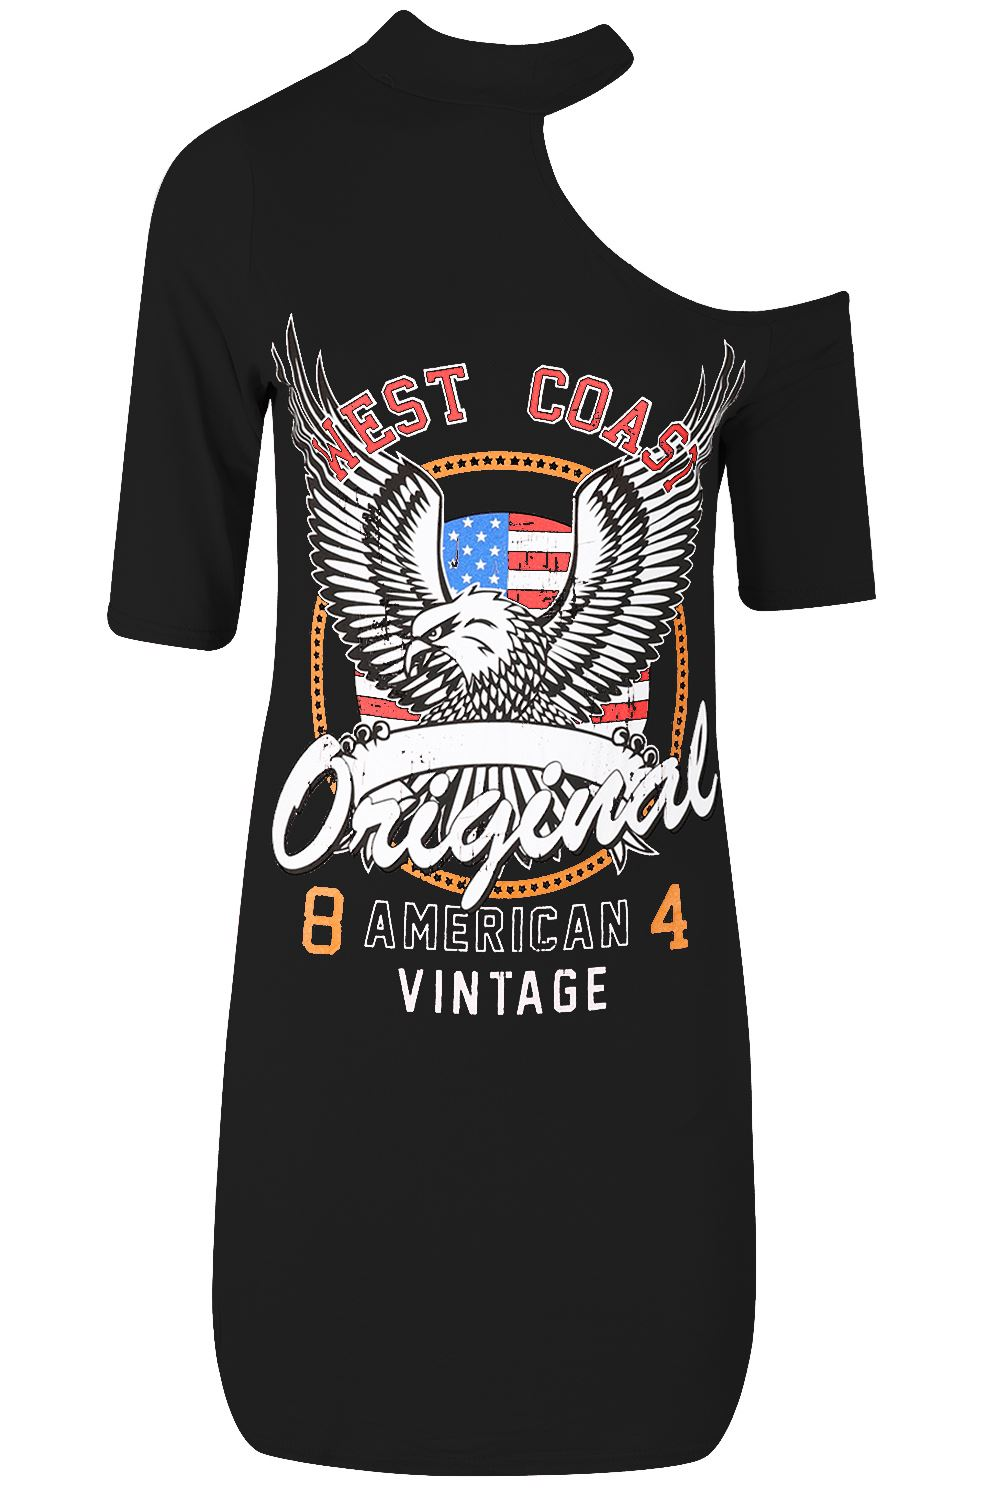 damen frauen rock american west coast original einschultrig lange t shirt kleid ebay. Black Bedroom Furniture Sets. Home Design Ideas